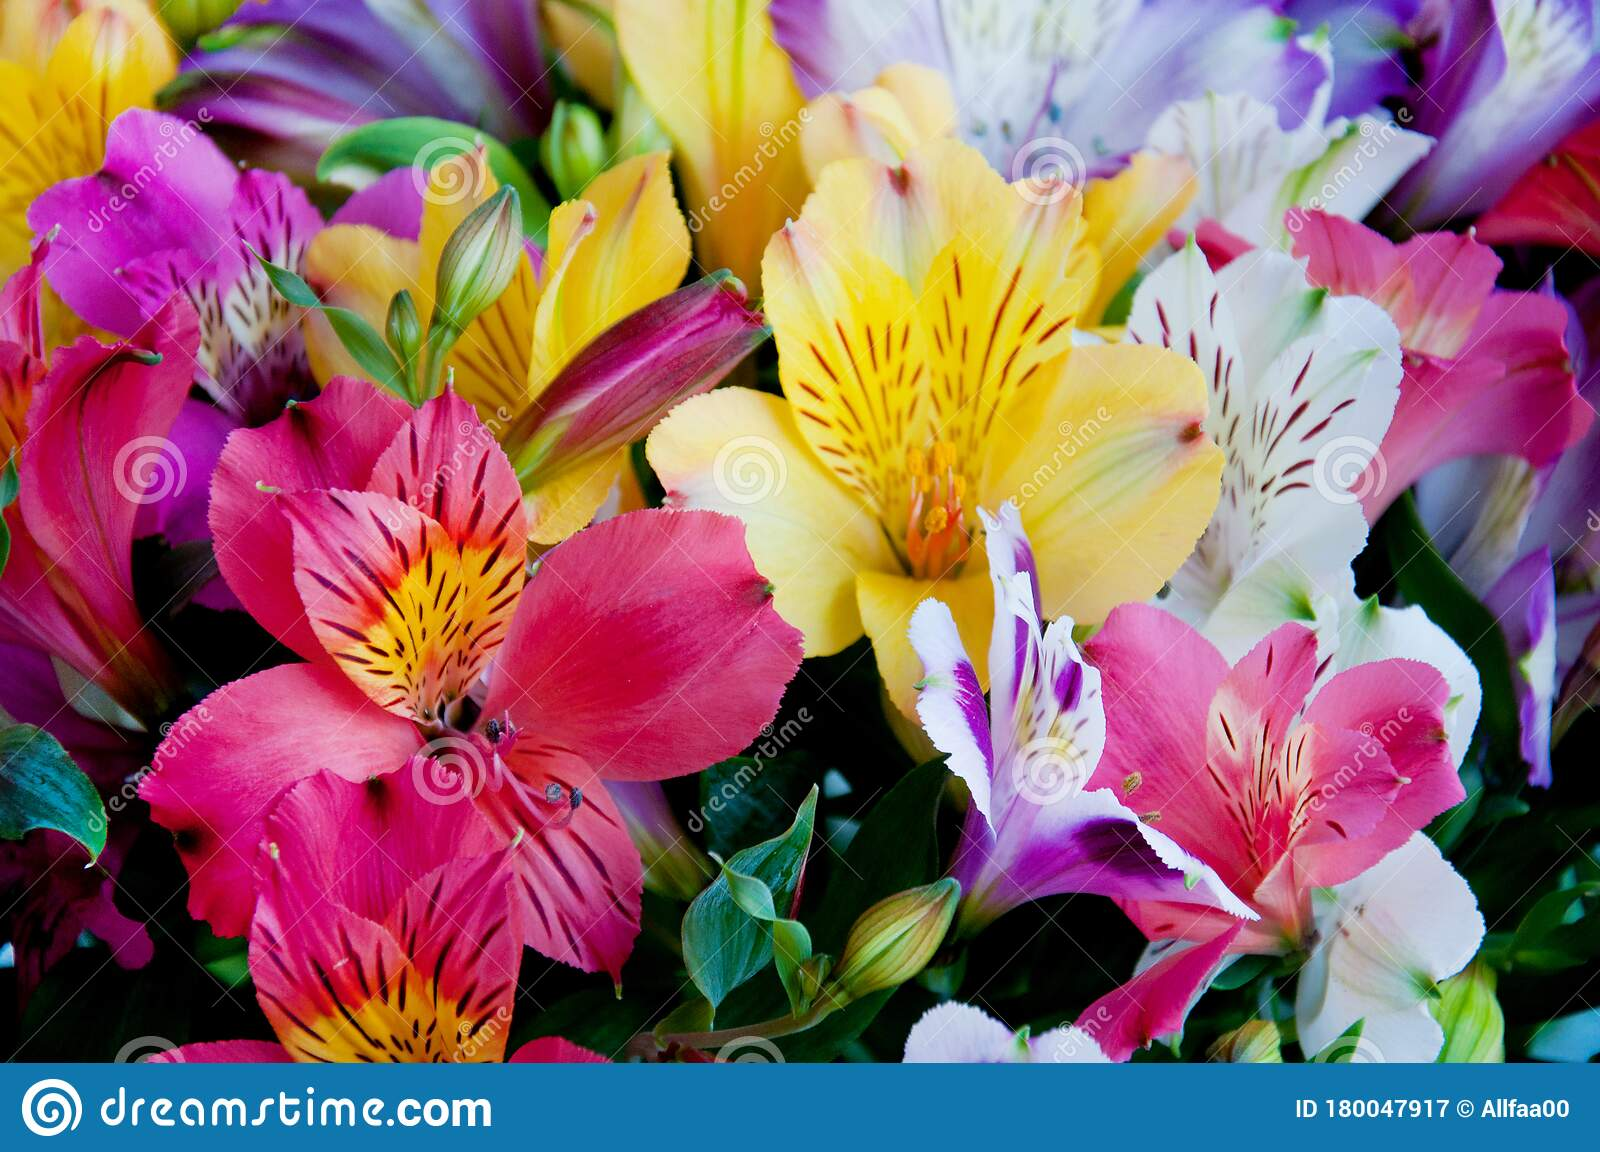 Beautiful Alstroemeria Flower Background Alstroemeria Flower Colorful Peruvian Lily Close Up Stock Image Image Of Bright Lily 180047917